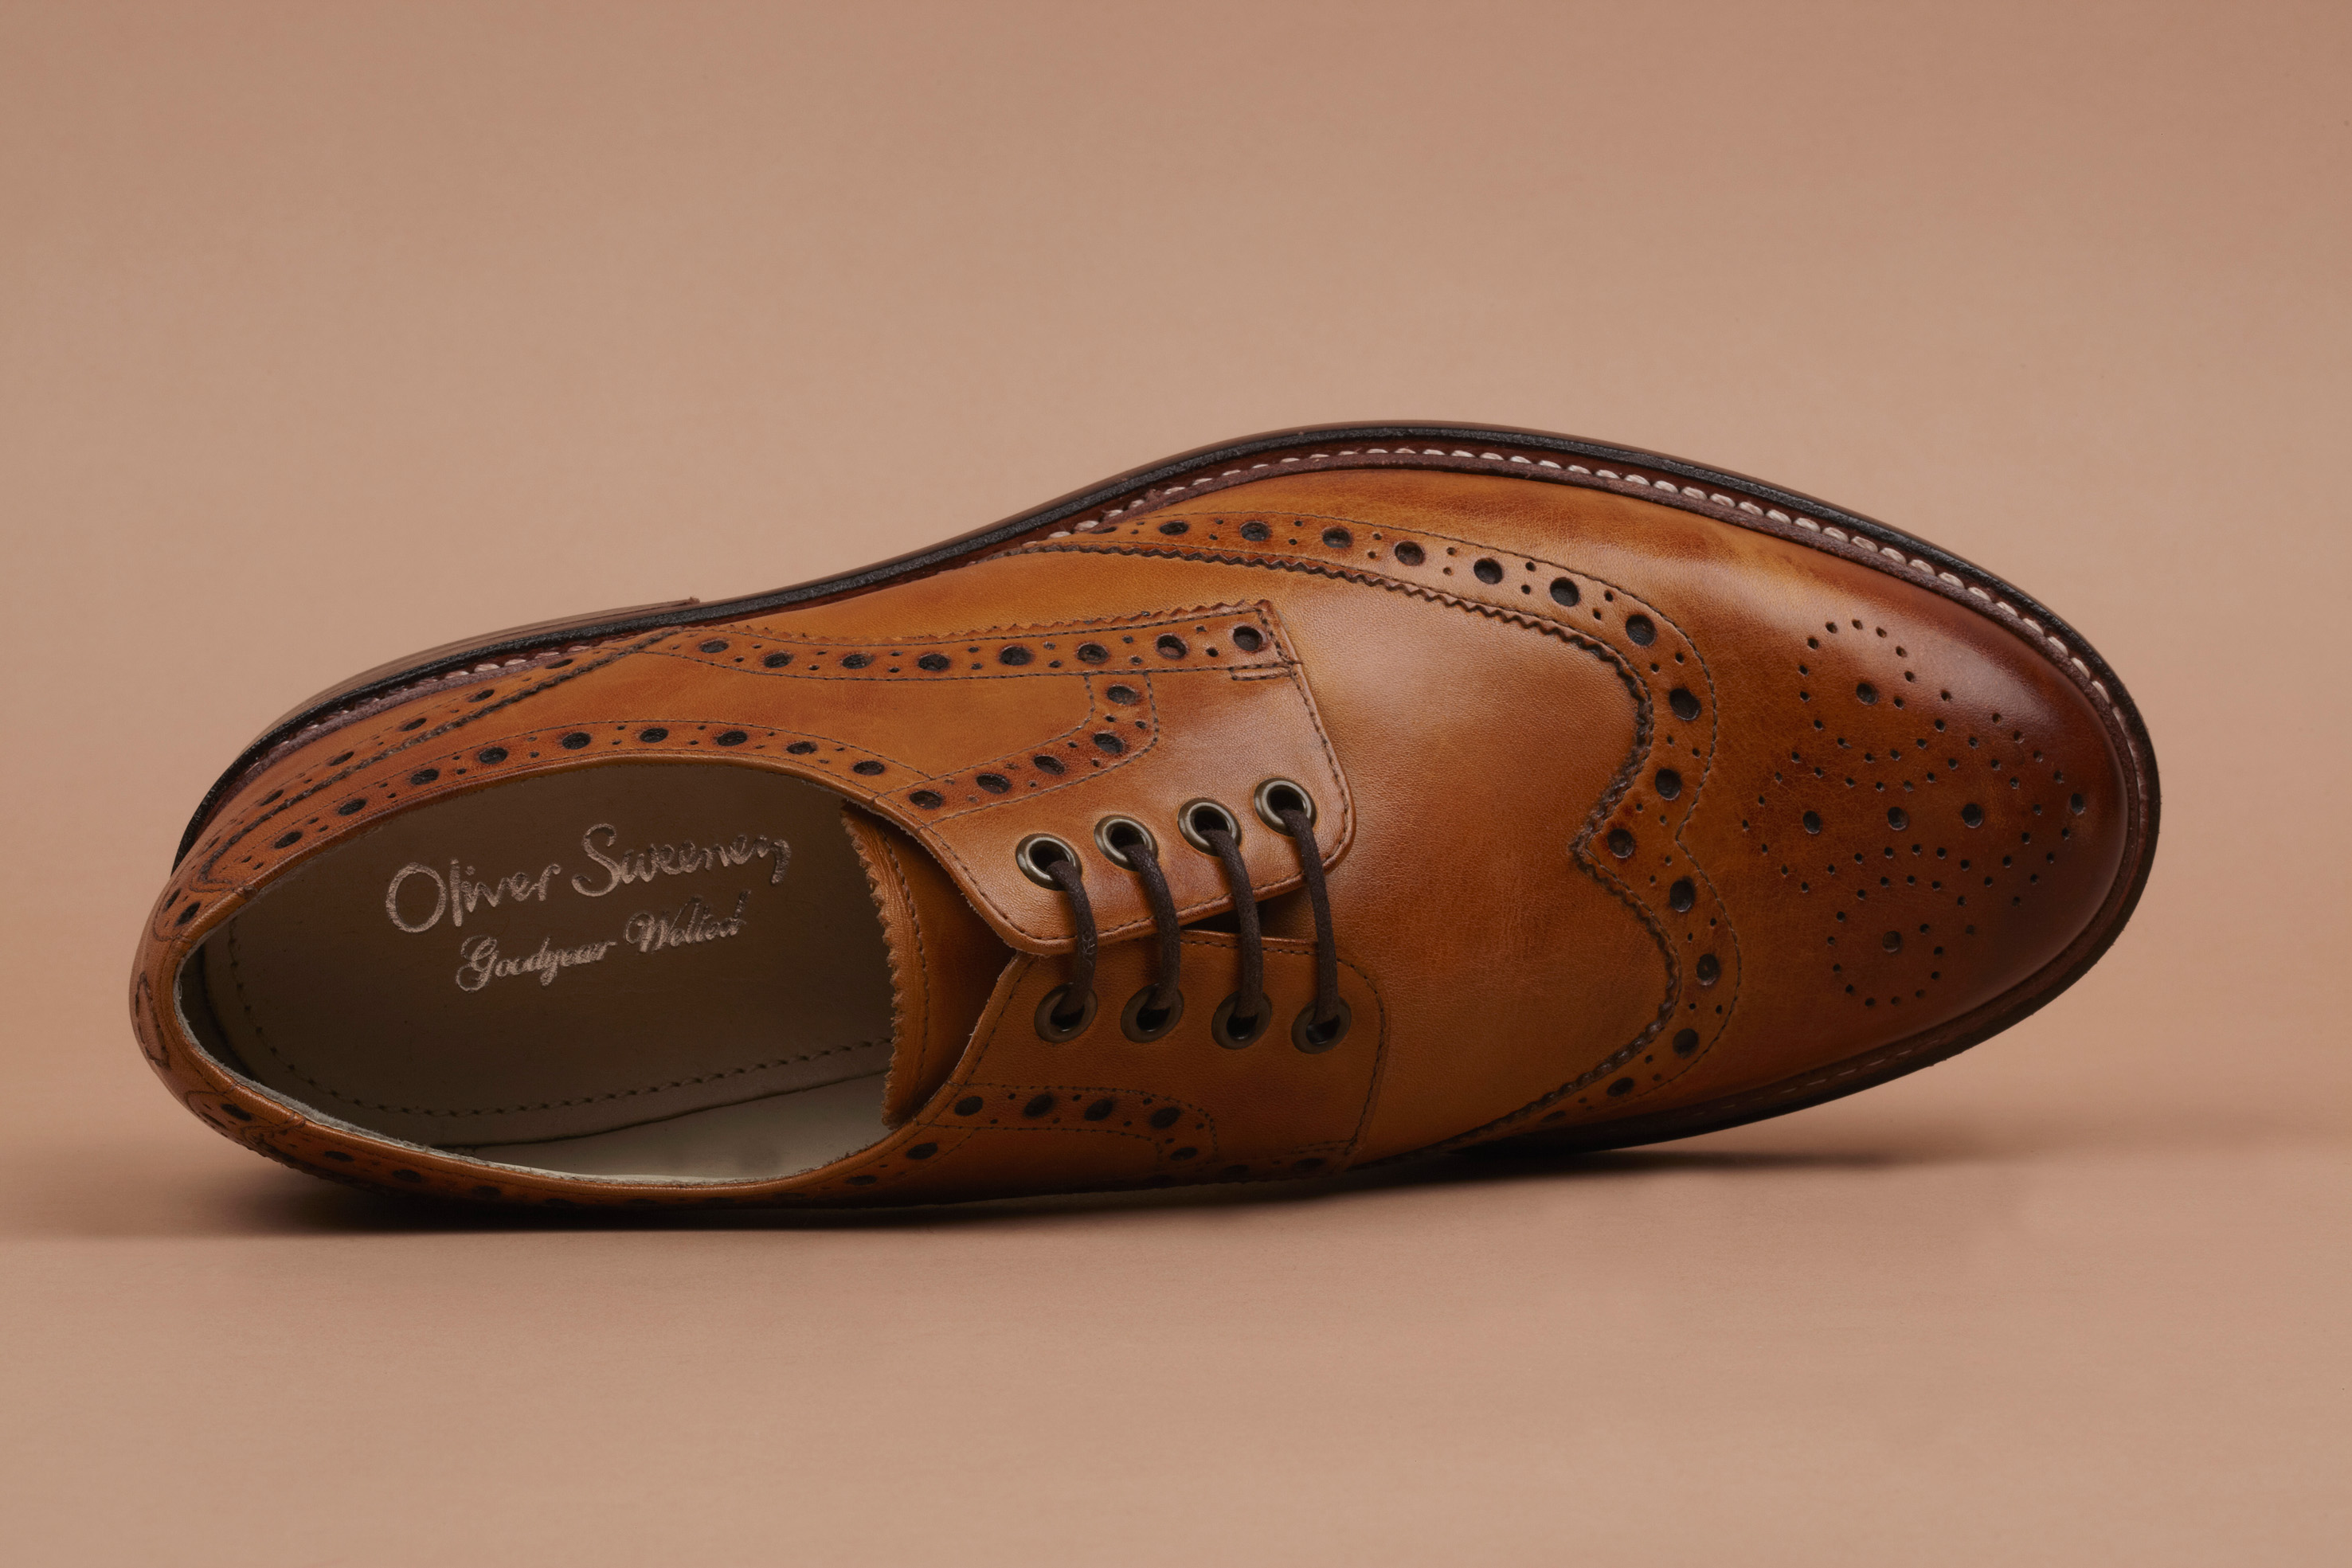 Oliver Sweeney Shoes Available at Mainline Menswear